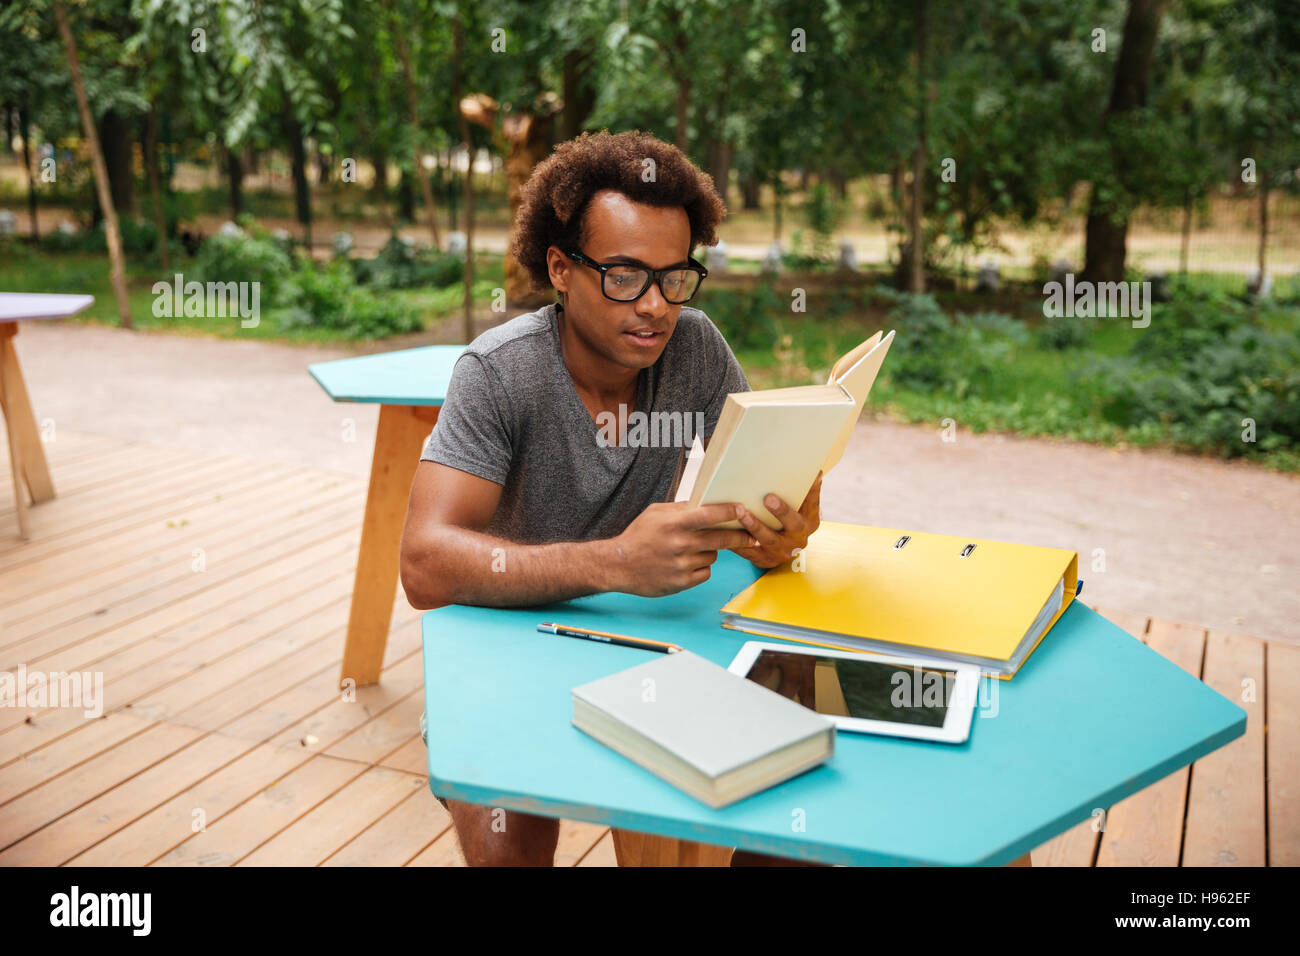 Concentrated african young man sitting and reading book outdoors - Stock Image